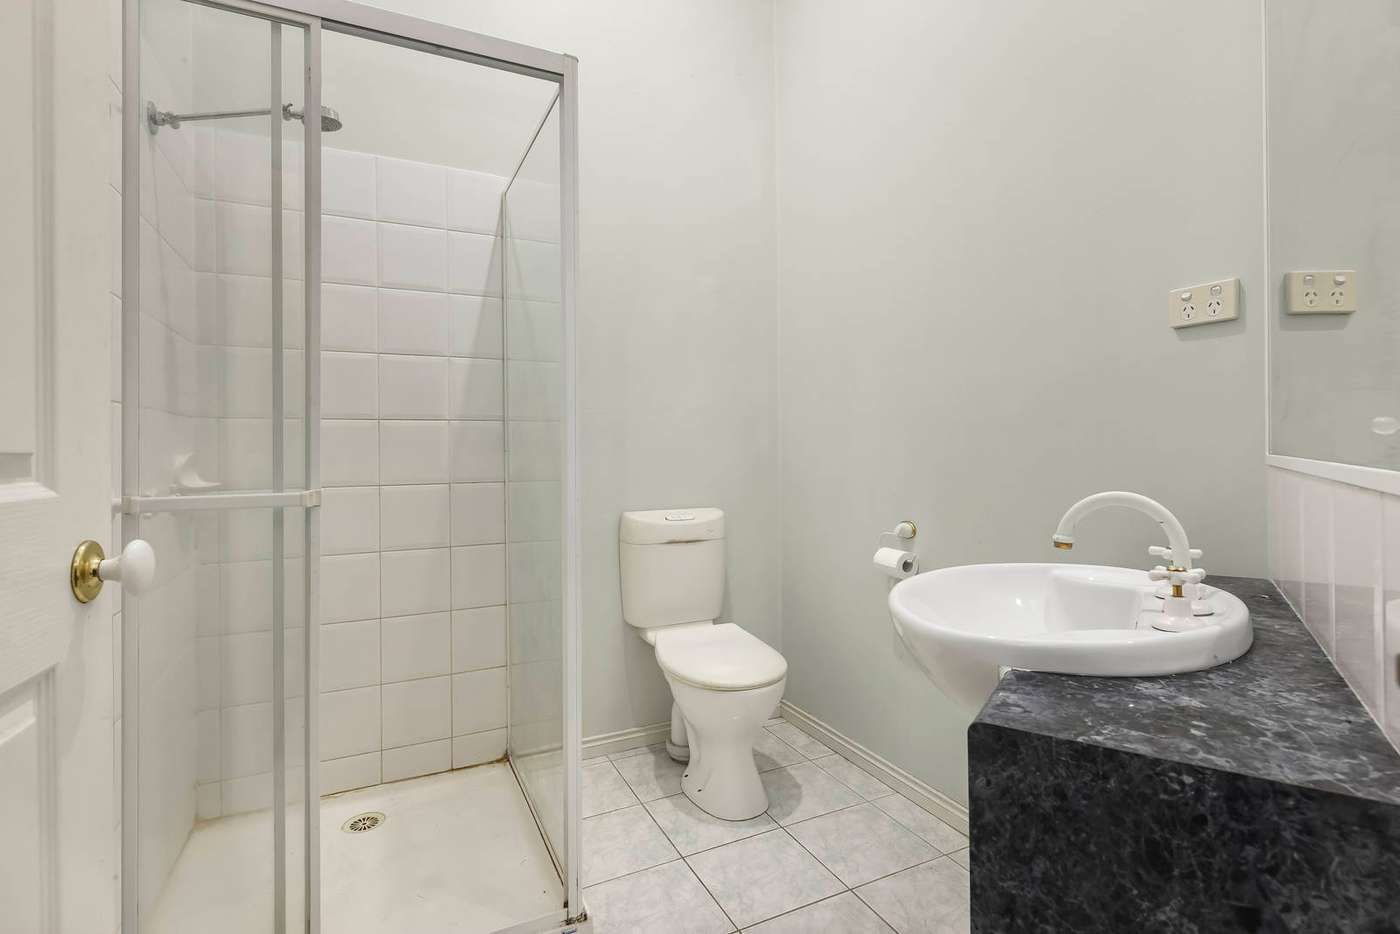 Sixth view of Homely house listing, 1A Graham Street, Newport VIC 3015